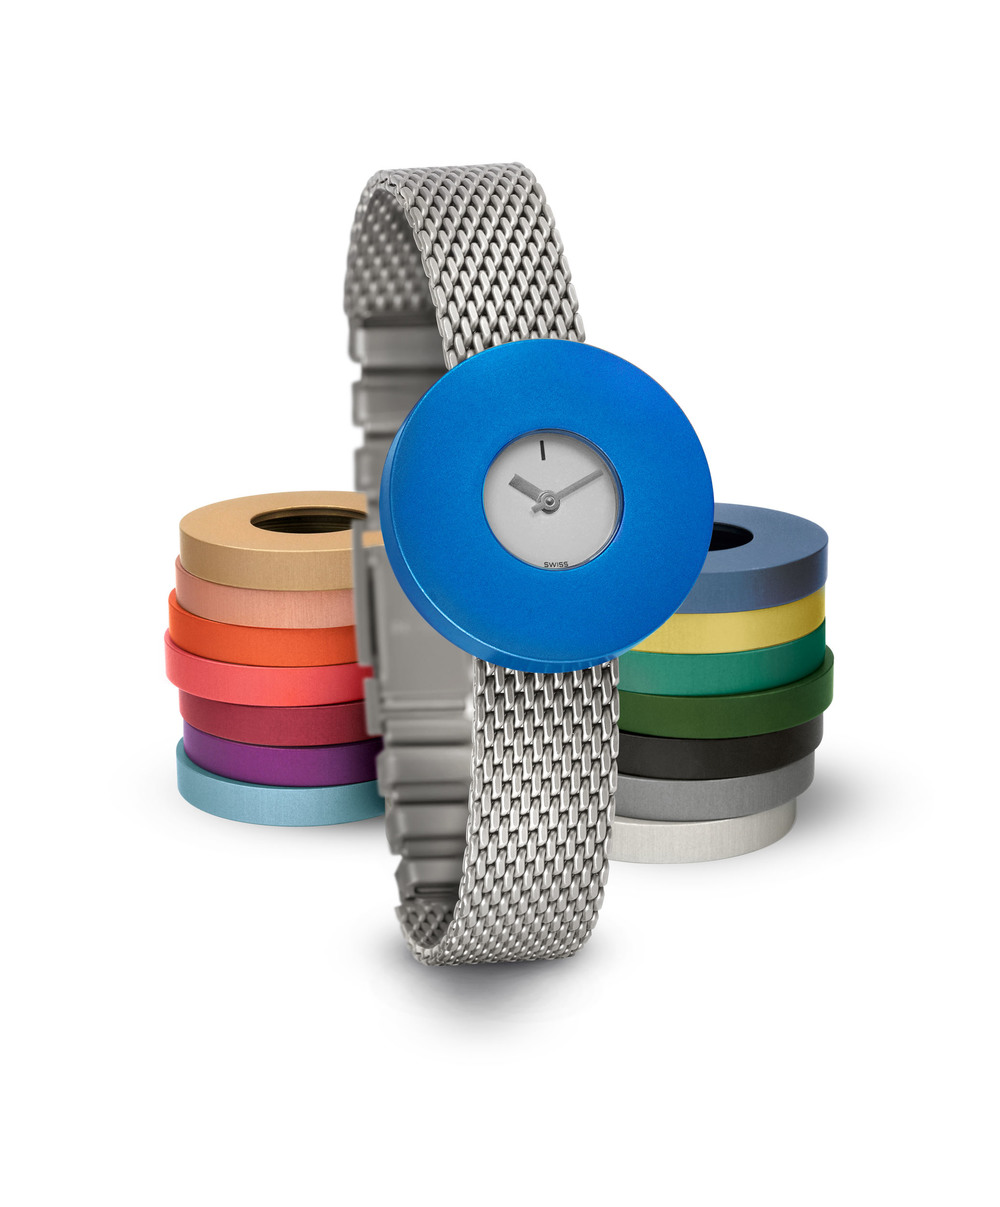 Junod-Vignelli MV Small silver_dial blue_ring milanais_band-small.JPG